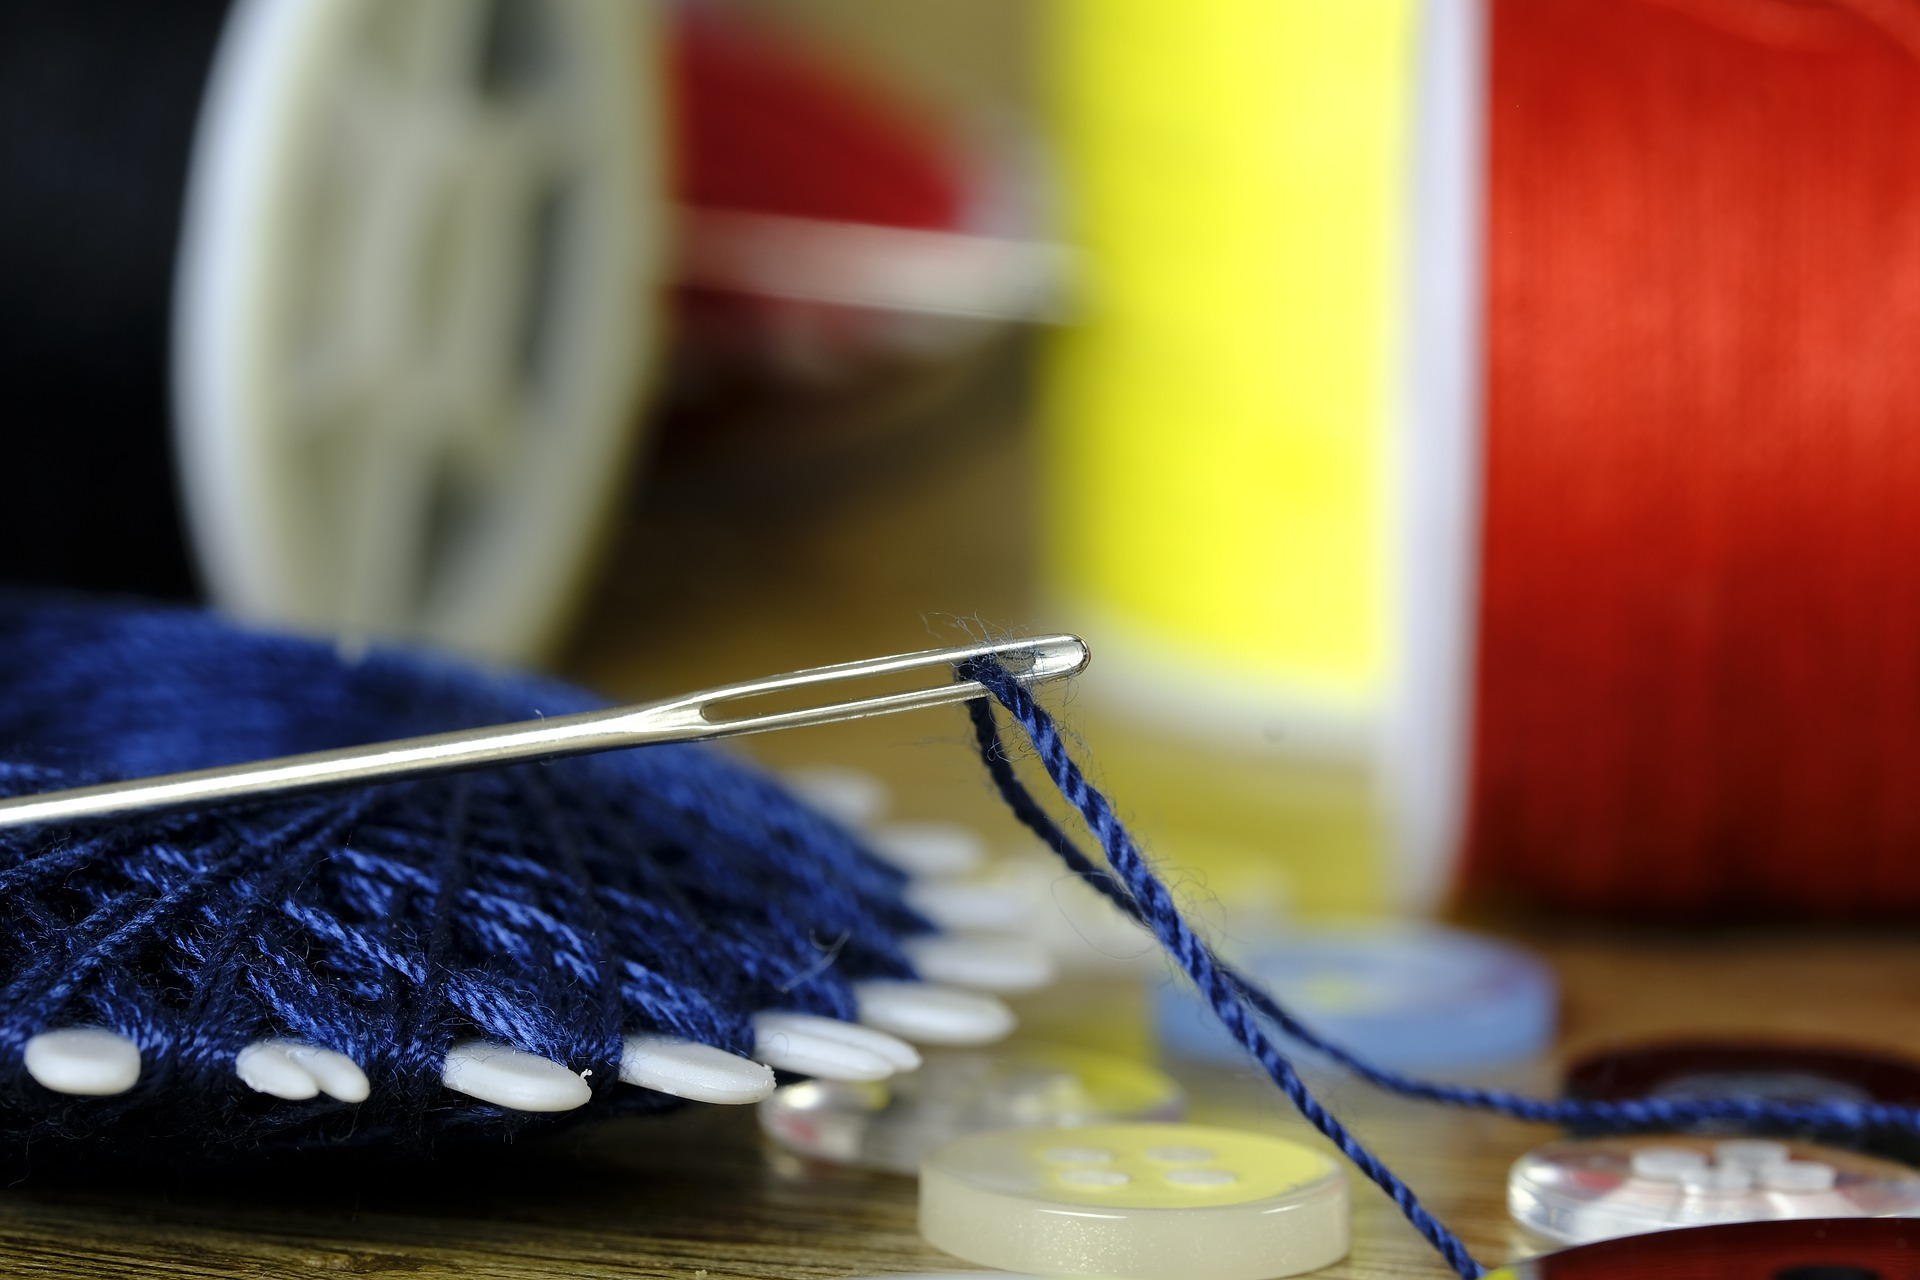 Inside the hole of the best hand sewing needle is a blue thread